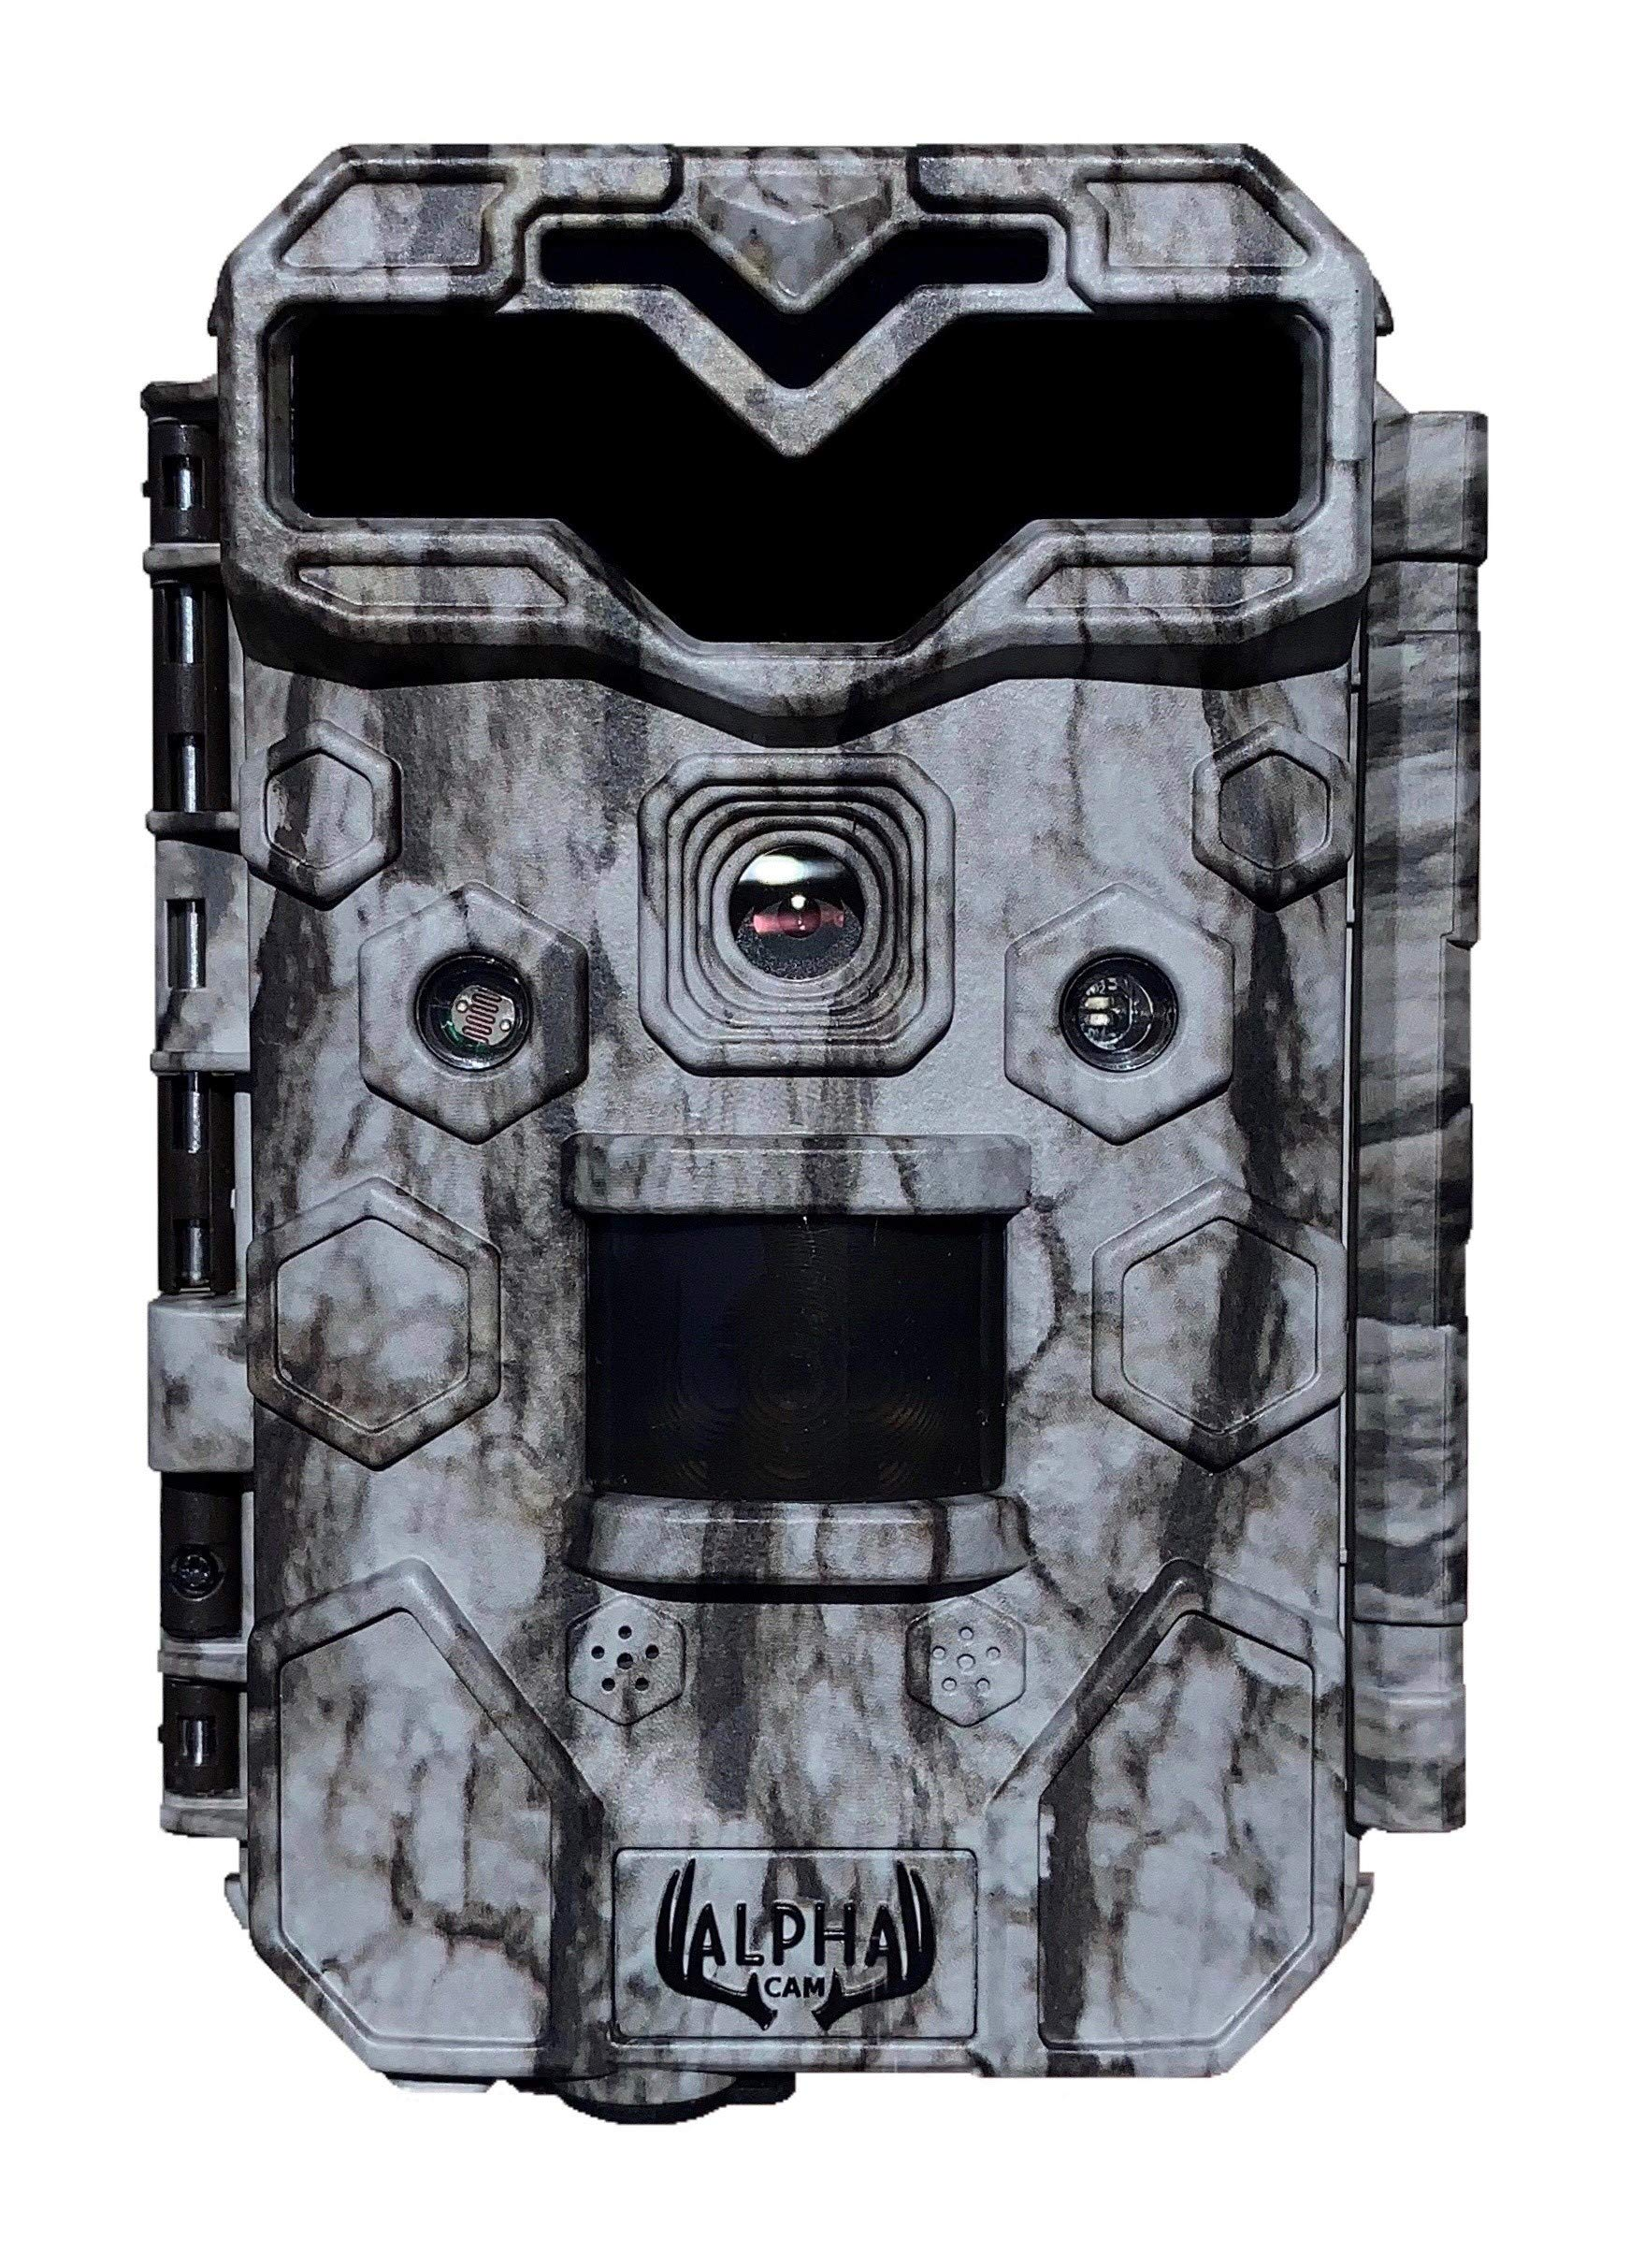 Alpha Cam Premium Hunting Trail Camera 30MP 1080p H.264 30fps Waterproof Scouting Cam with Ultra Fast Trigger Speed and Recovery Rate HD Long Range IR Night Vision 2.4'' LCD by Alpha Cam Panos